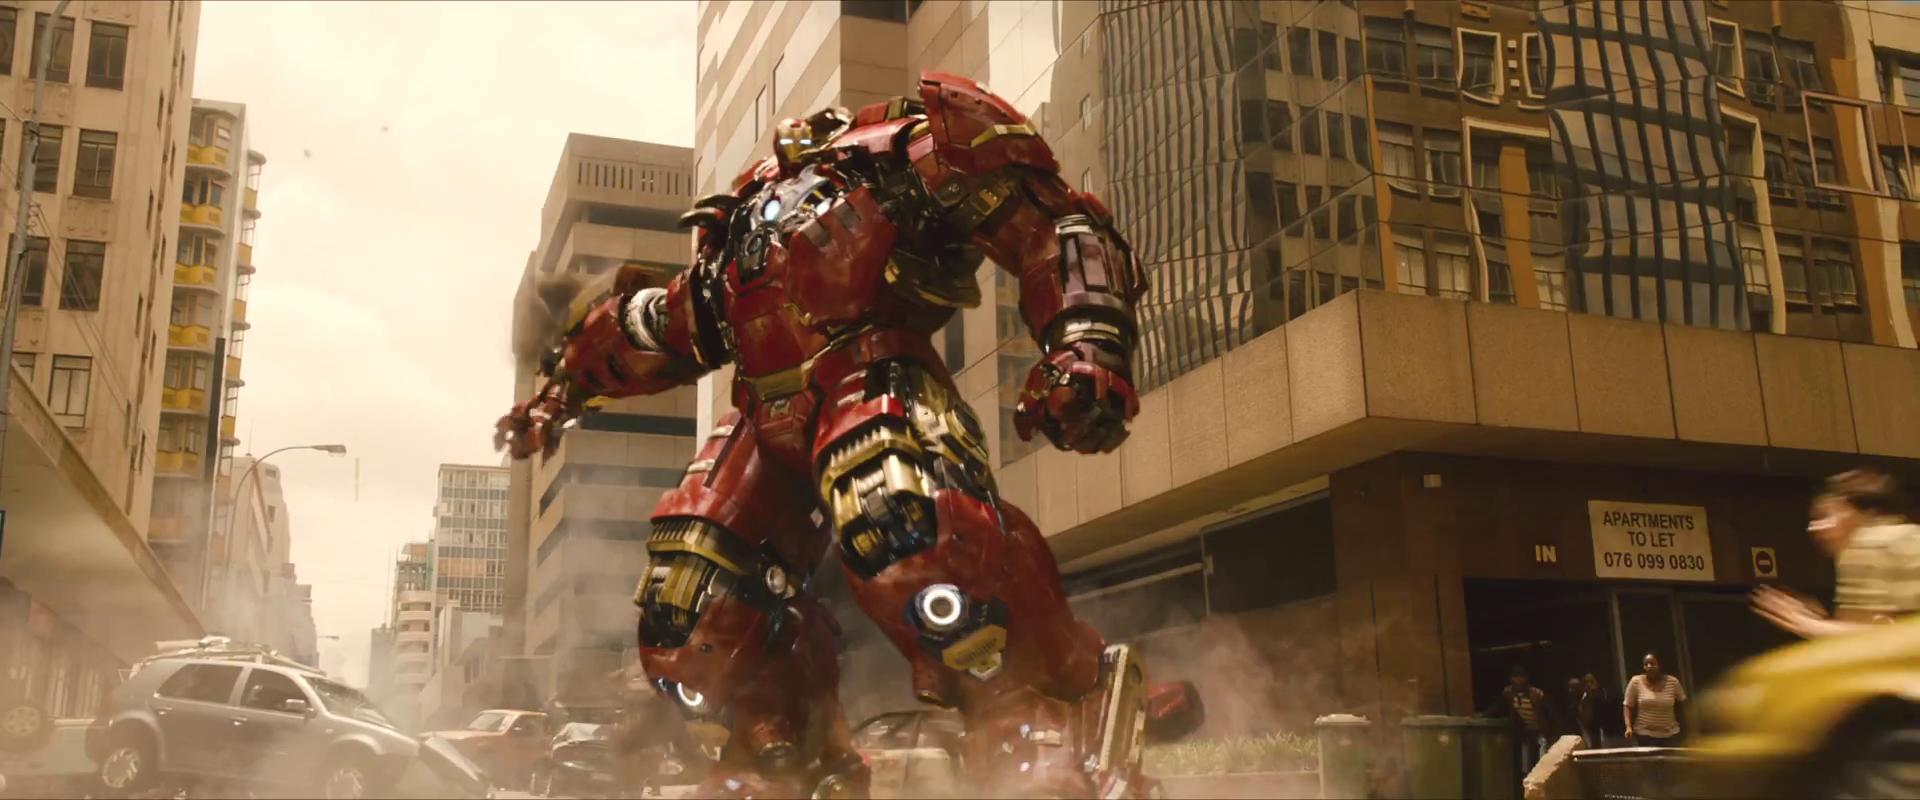 Image result for hulkbuster age of ultron